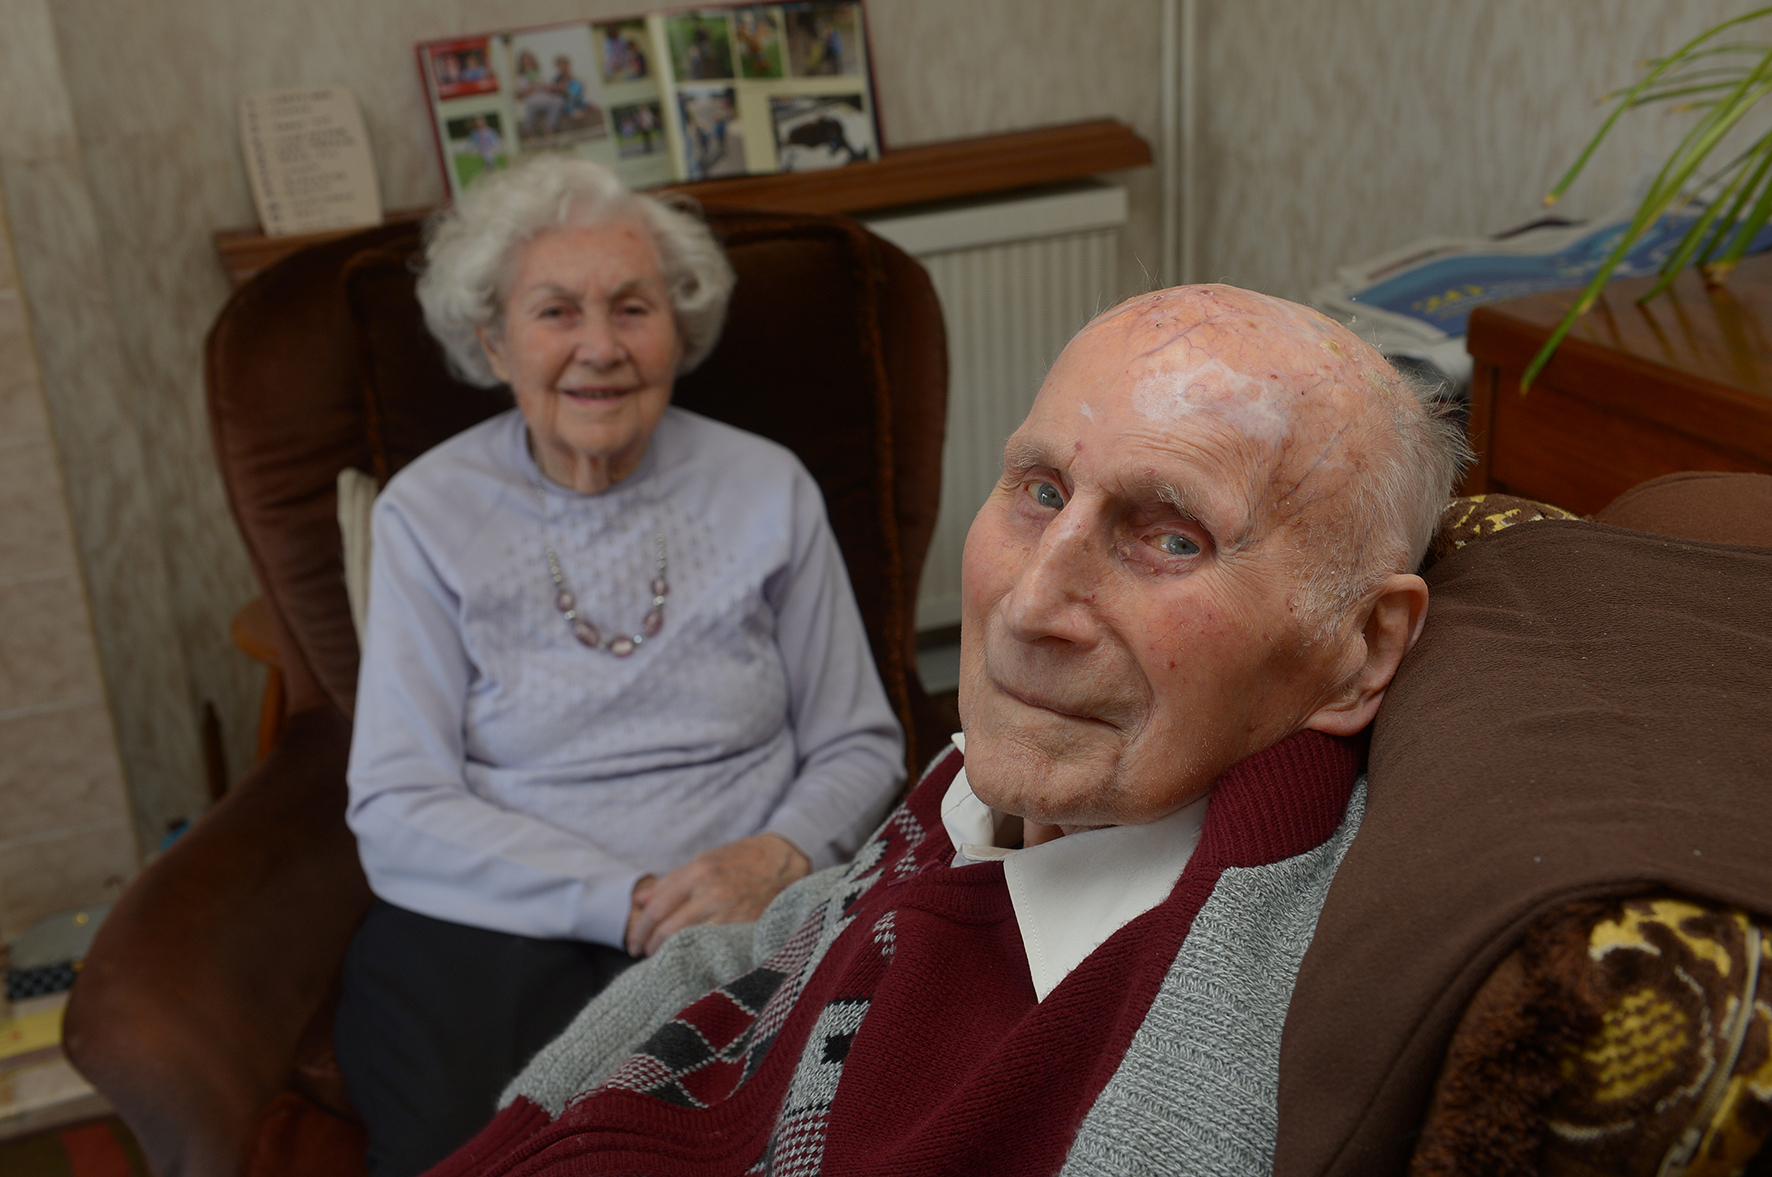 Bet and Ernie Lane.Ernie Lane, Rayleigh, is turning 100 years old on May 2nd..